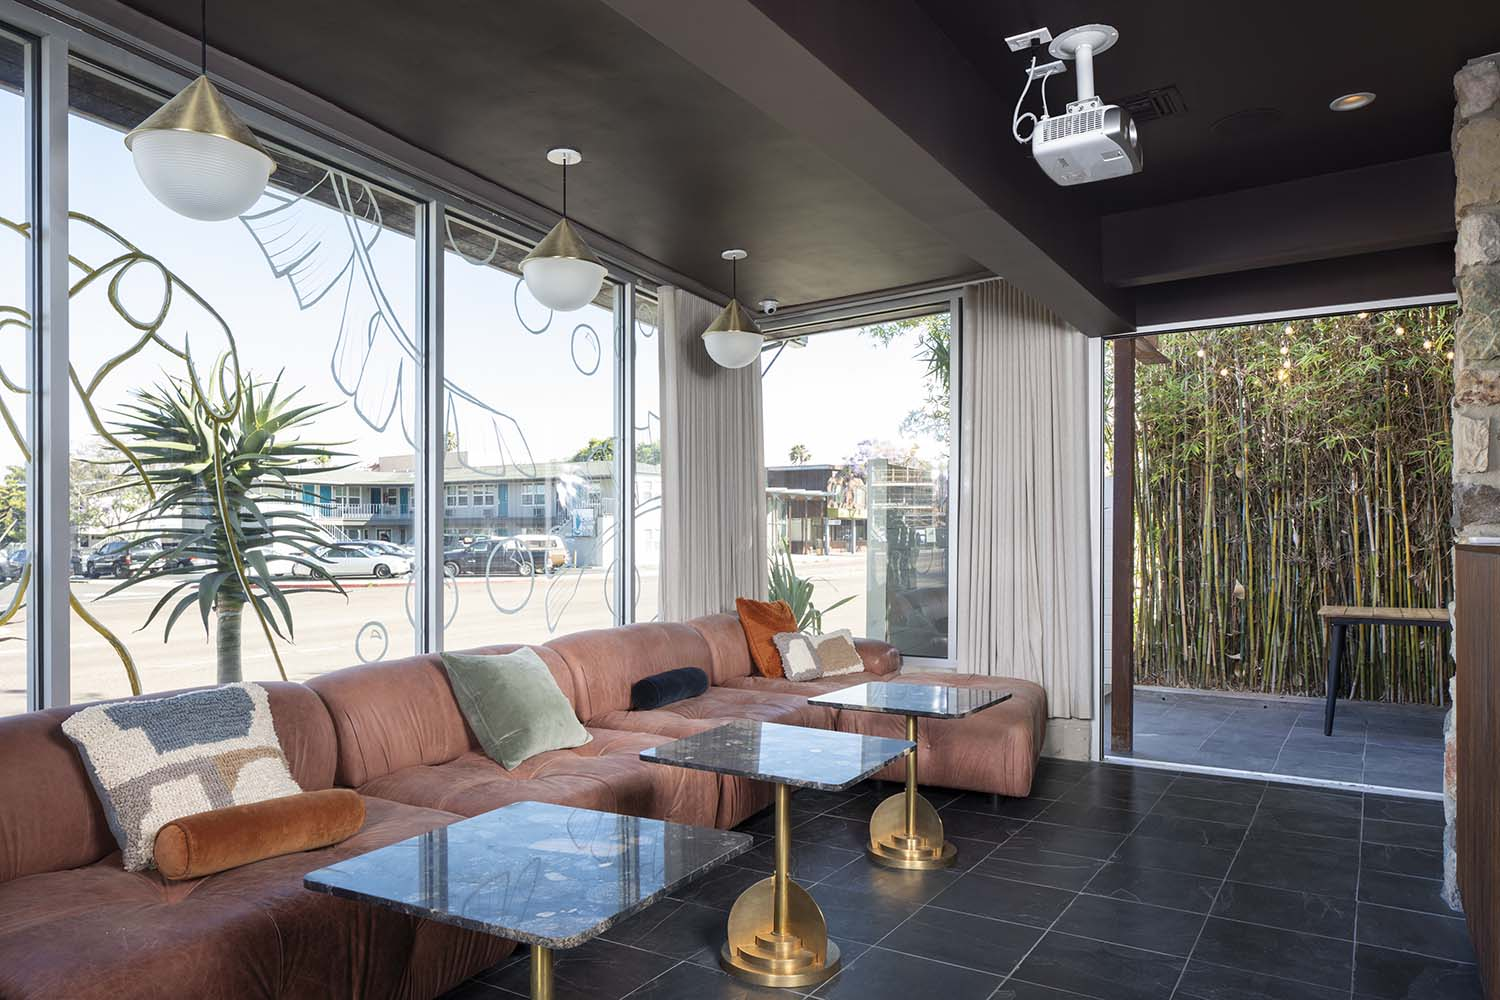 The Pearl Hotel San Diego, Iconic Motel by Casetta Group/Electric Bowery/Pow Wow Design Studio